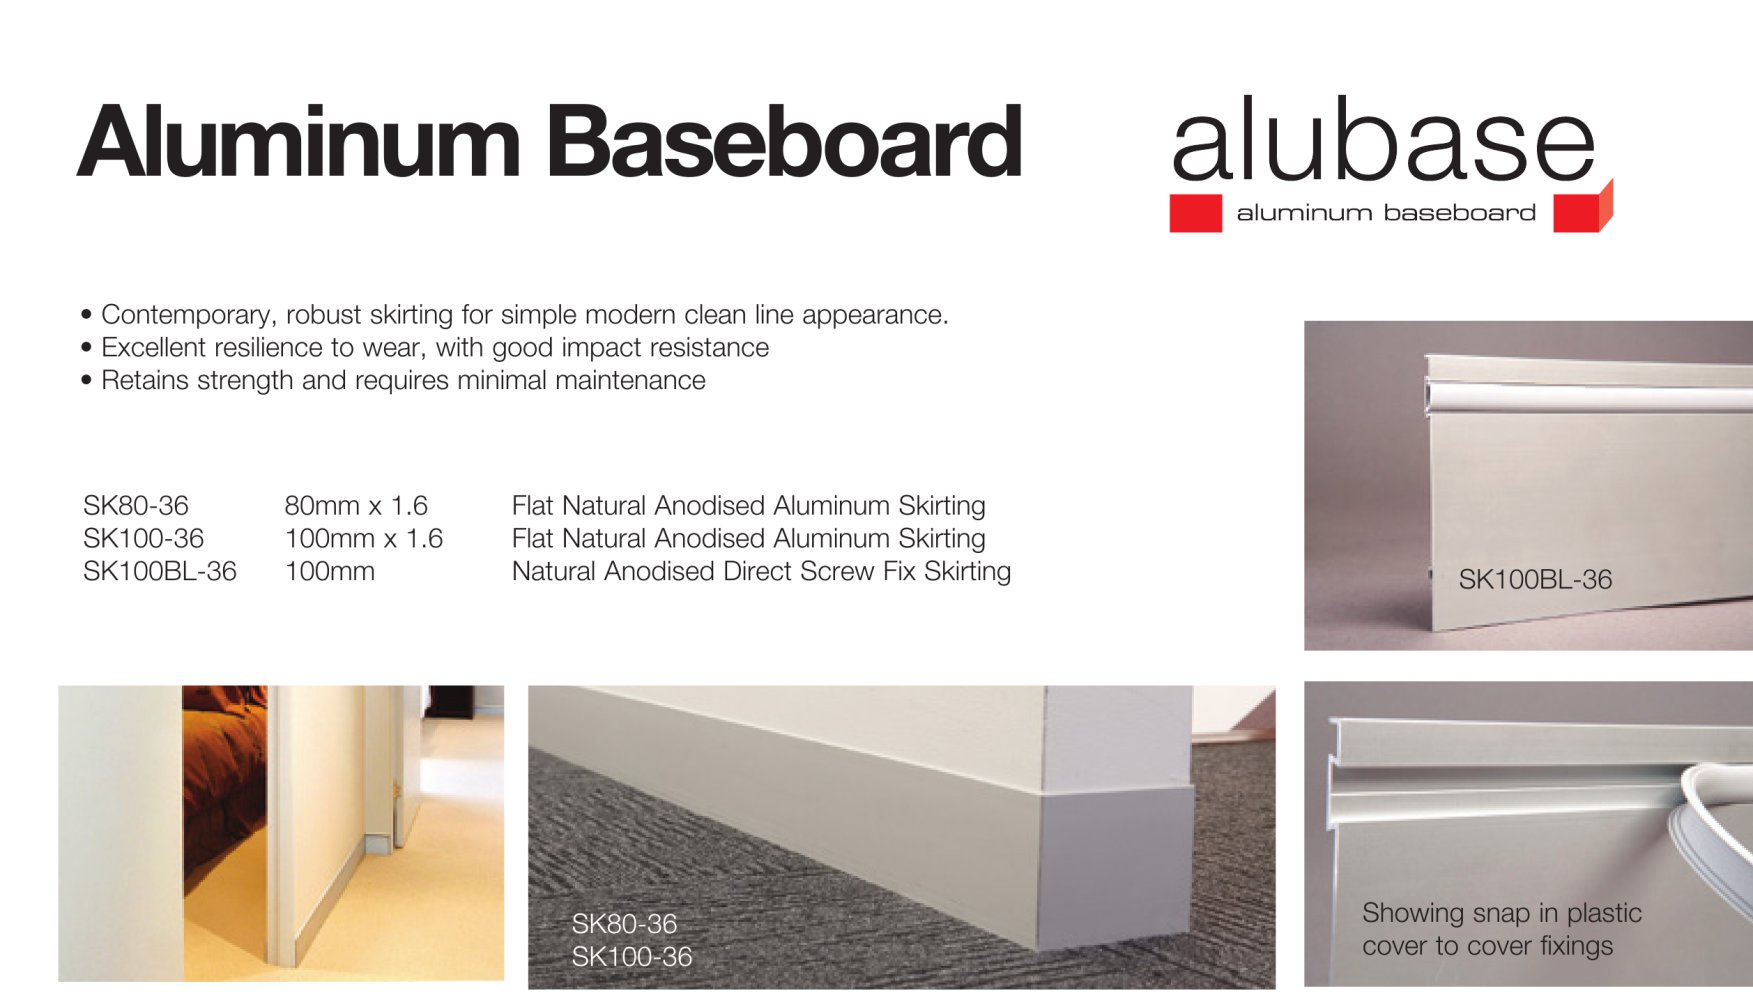 Aluminum baseboard 1 2 pages